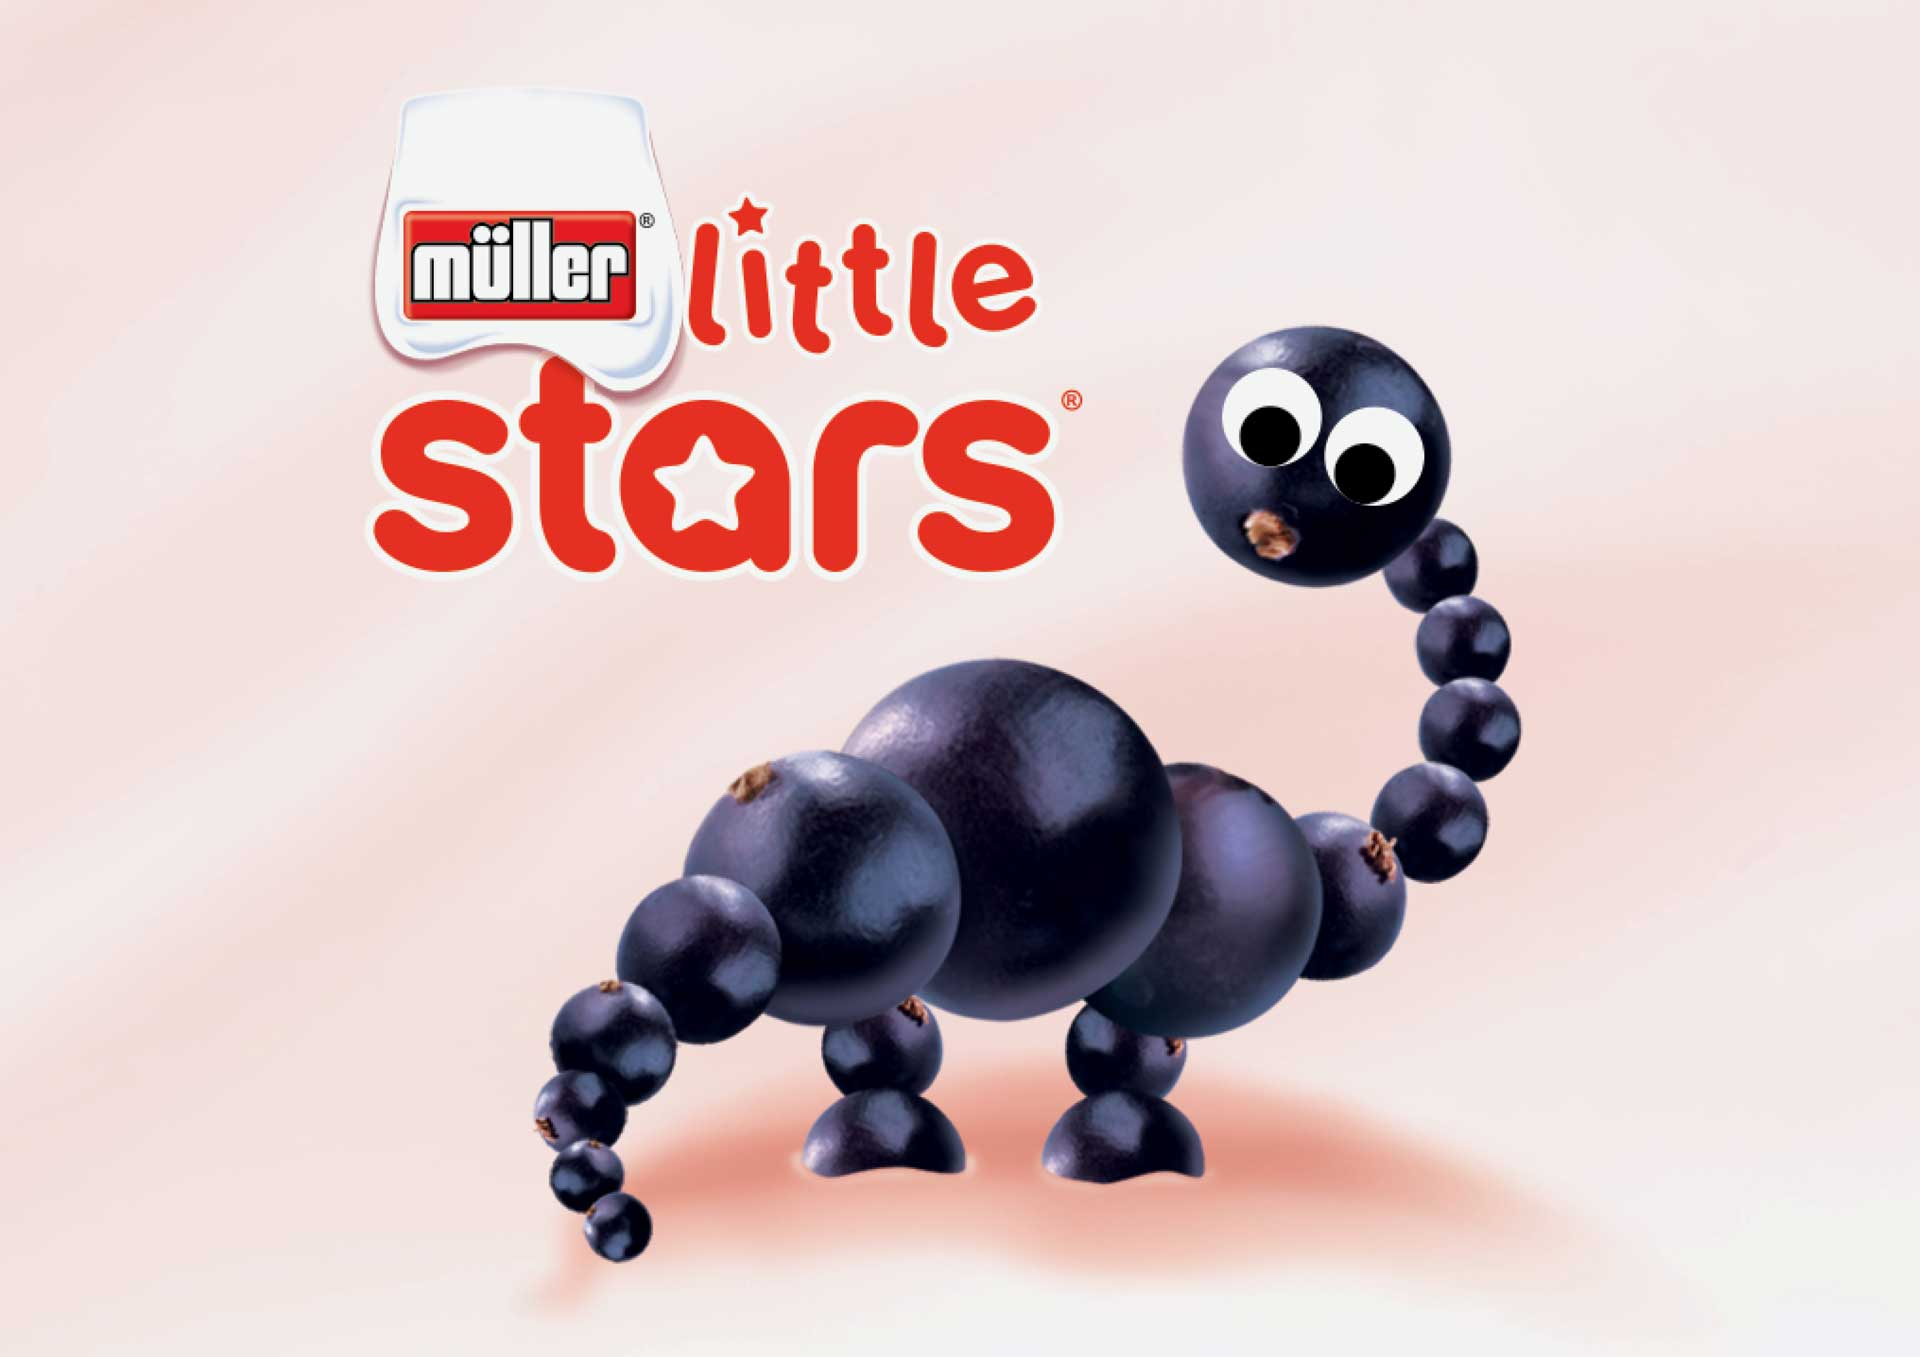 muller-little-stars-packaging-3